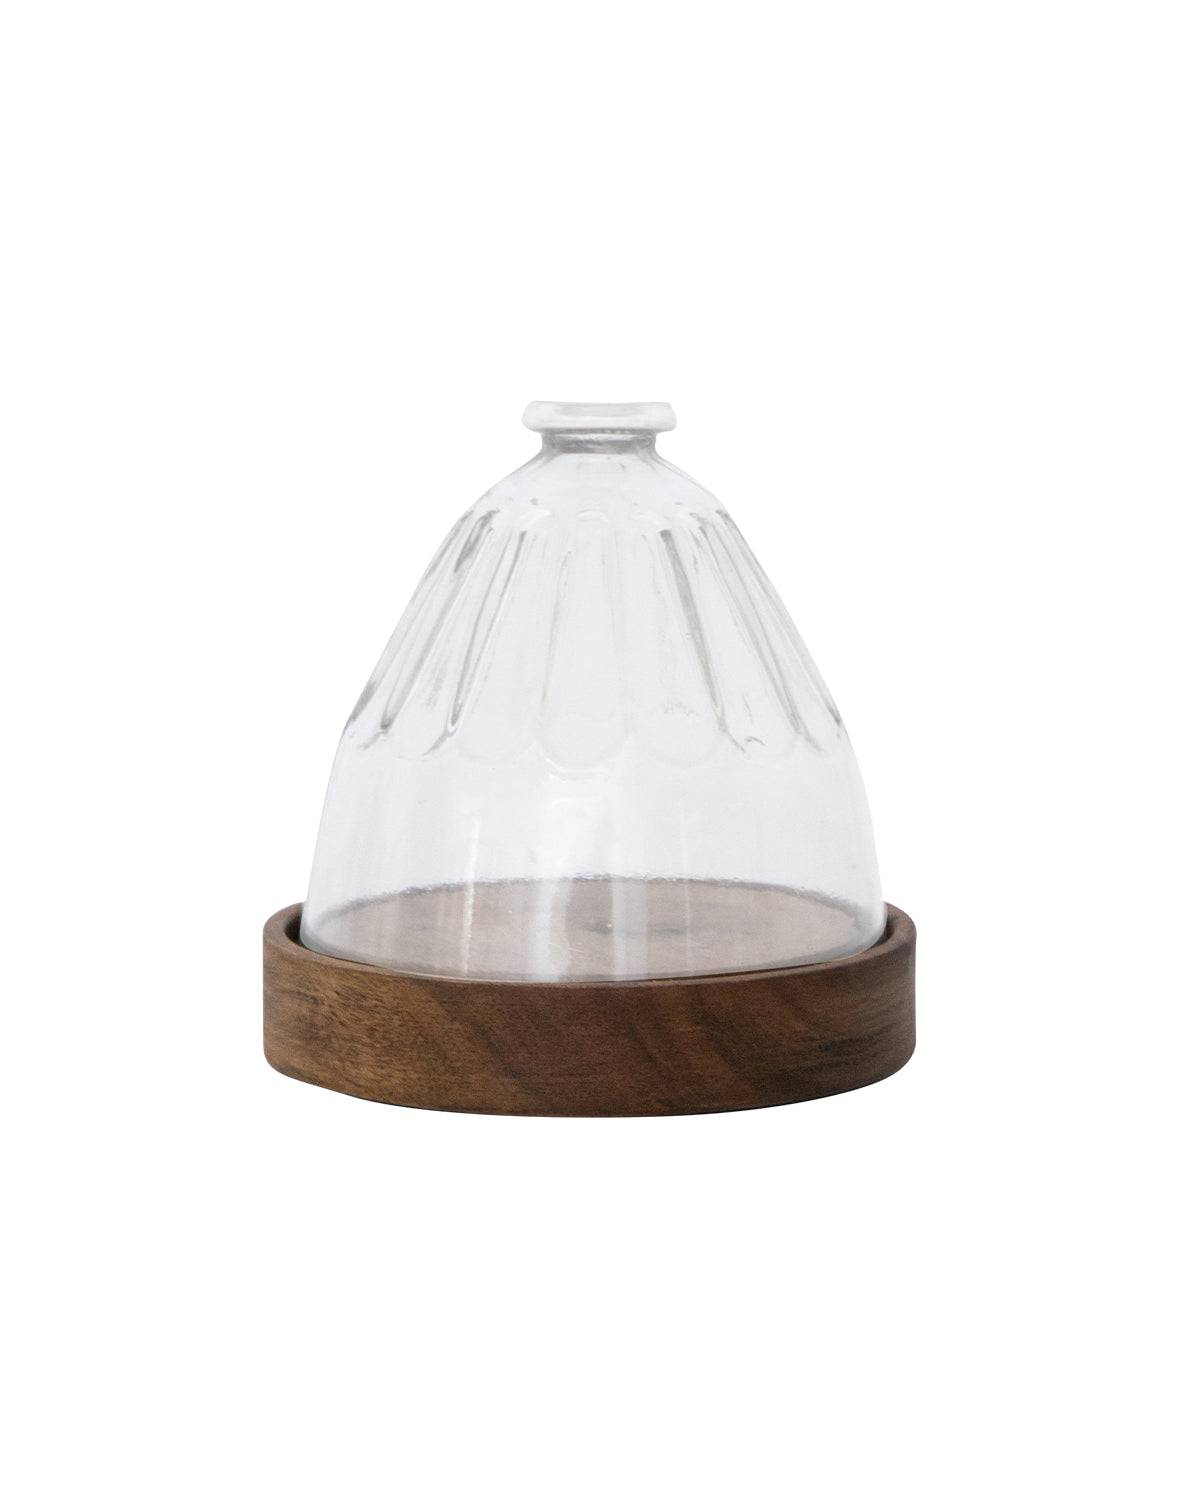 Faceted Wood & Glass Cloche